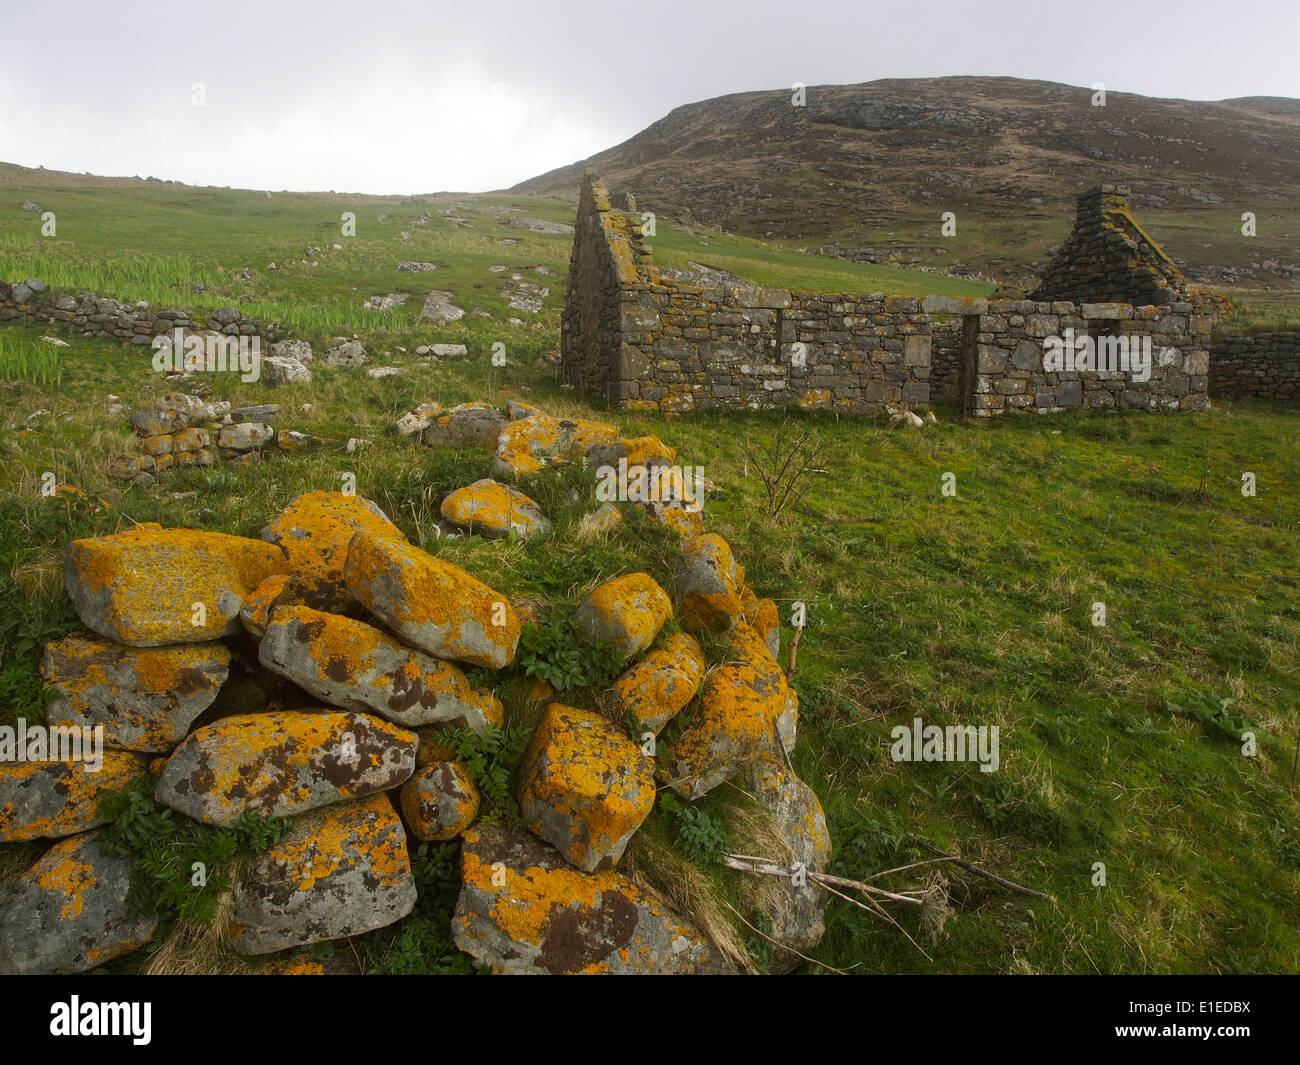 ruined buildings in deserted village, Mingulay, Scotland Stock Photo